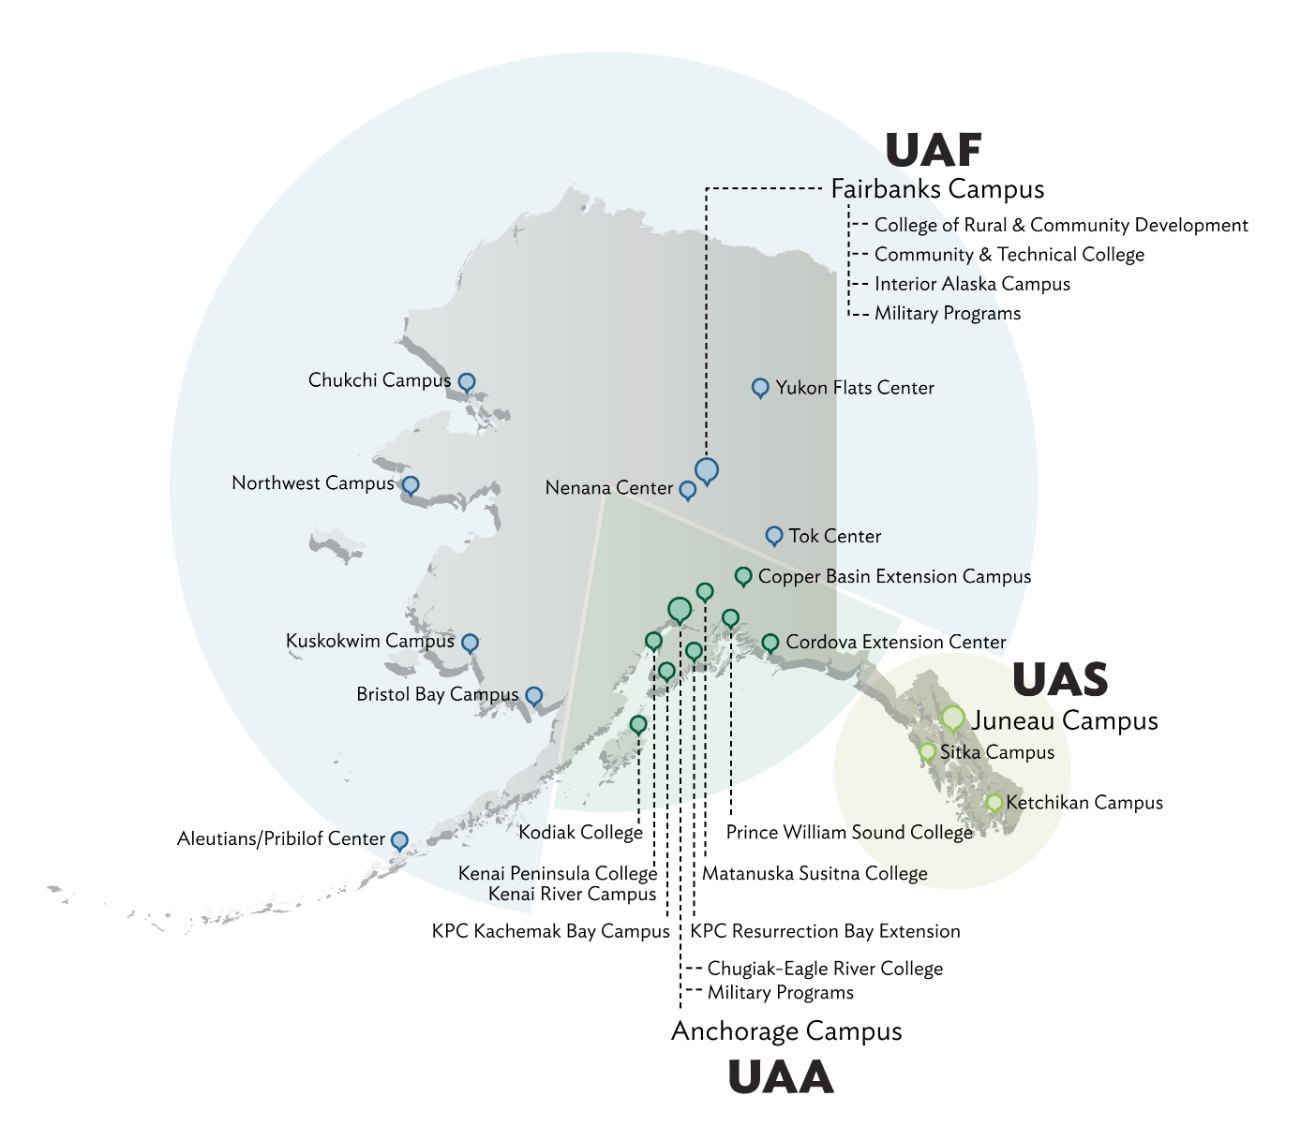 Map of UA campuses